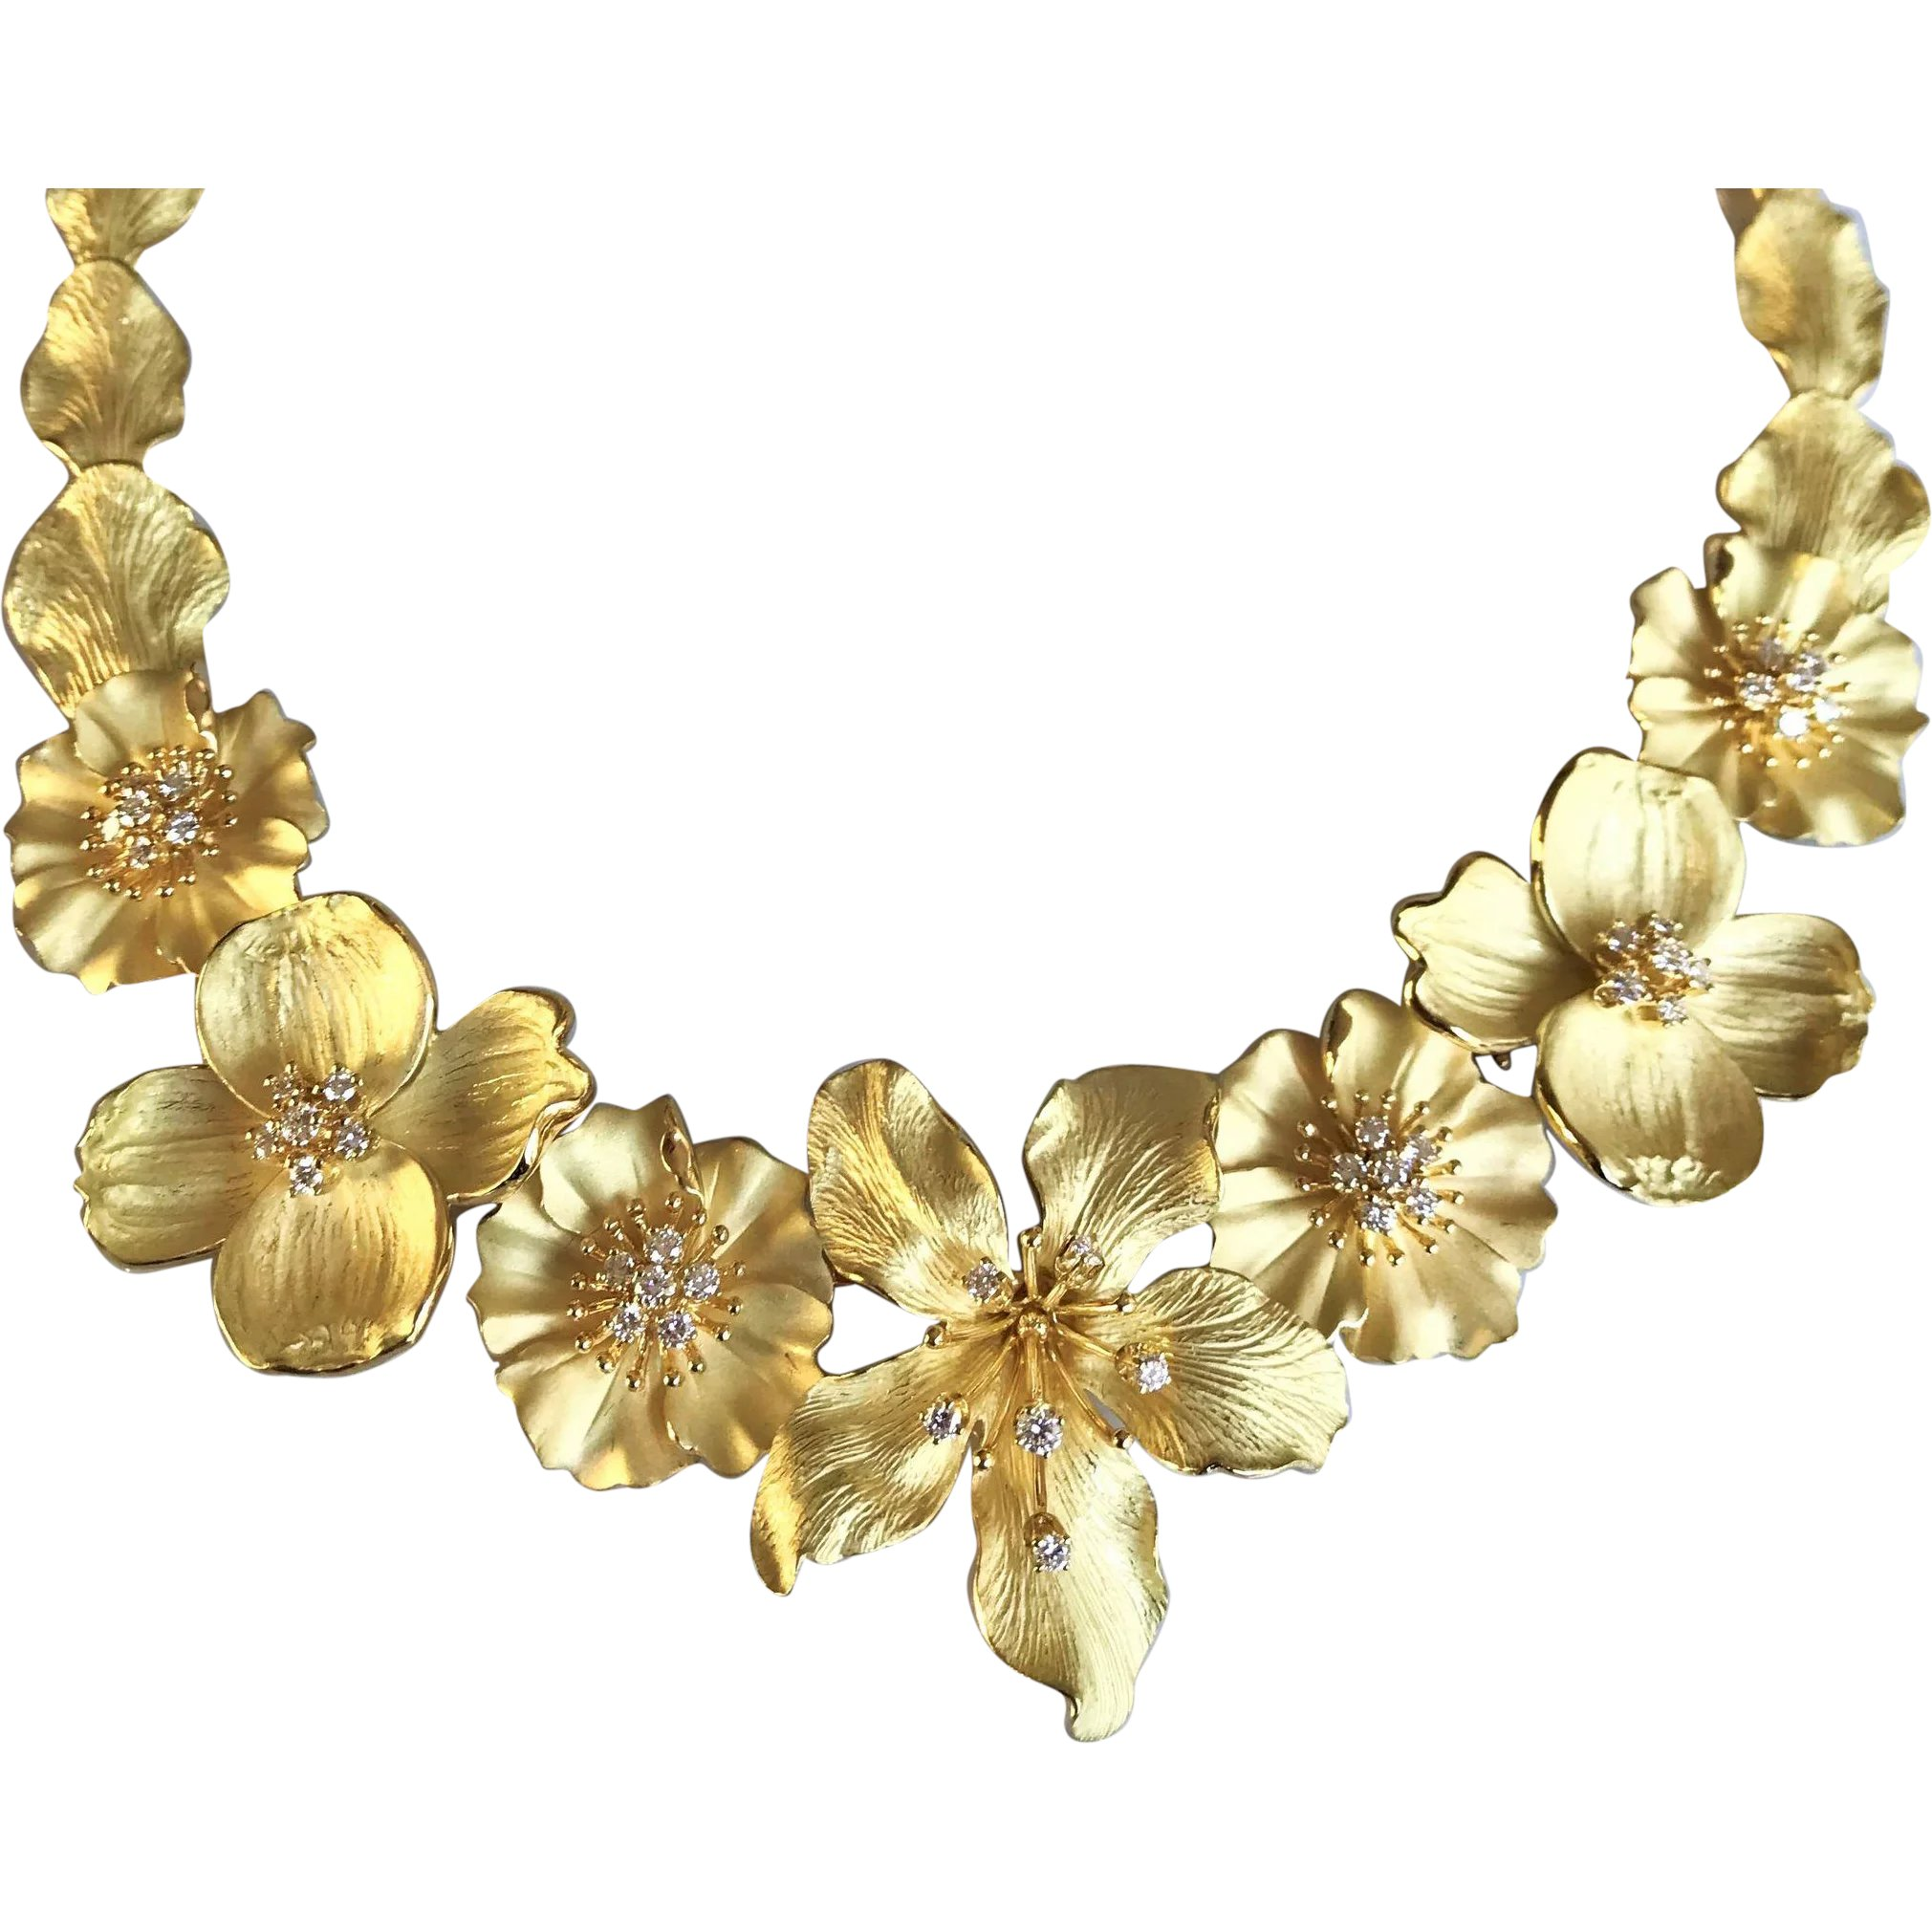 de7bb8109 Tiffany & Co 18K Gold Diamond Dogwood Flower Bouquet Necklace : Green Wood  Gallery | Ruby Lane